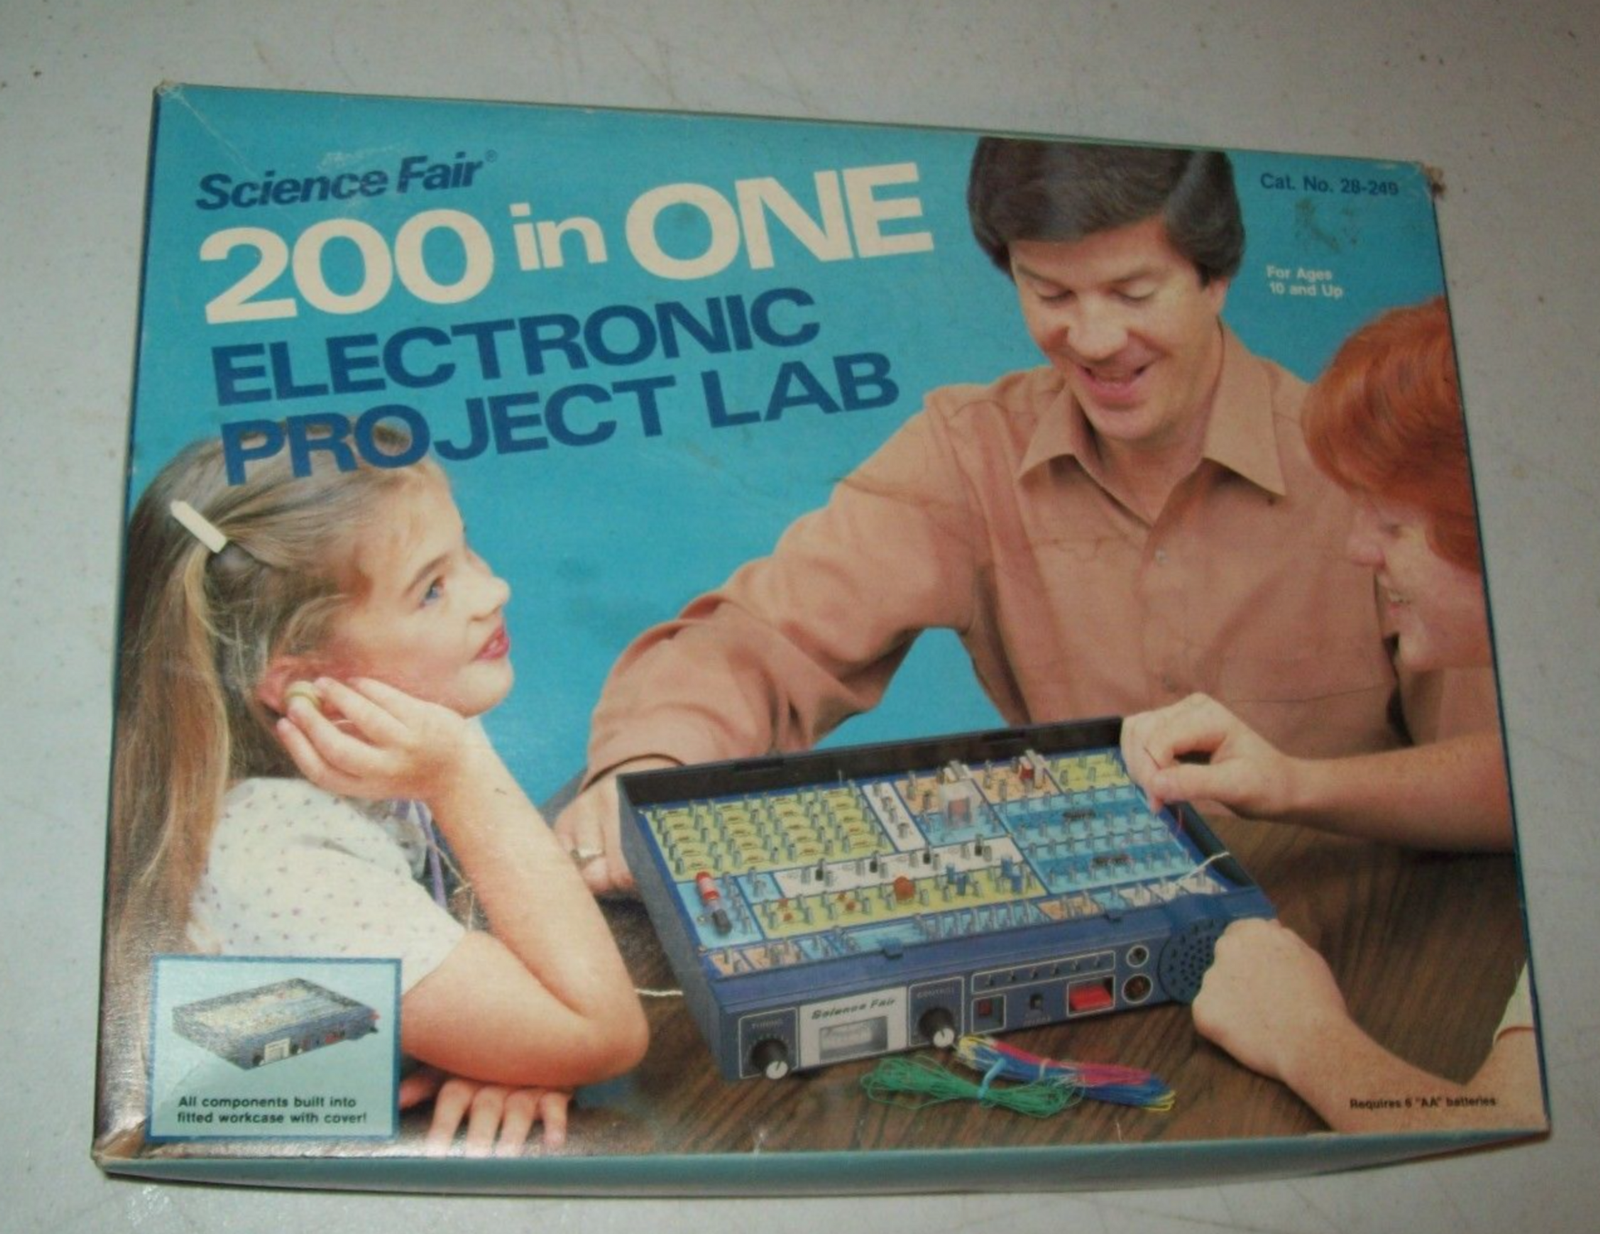 Electronic Project Kits Hands On With A Vintage 160 In 1 Snap Circuits Kit Education Set Game Toy Science Hobby New Ebay And Its Predecessor Fair 150 28248 1976 The